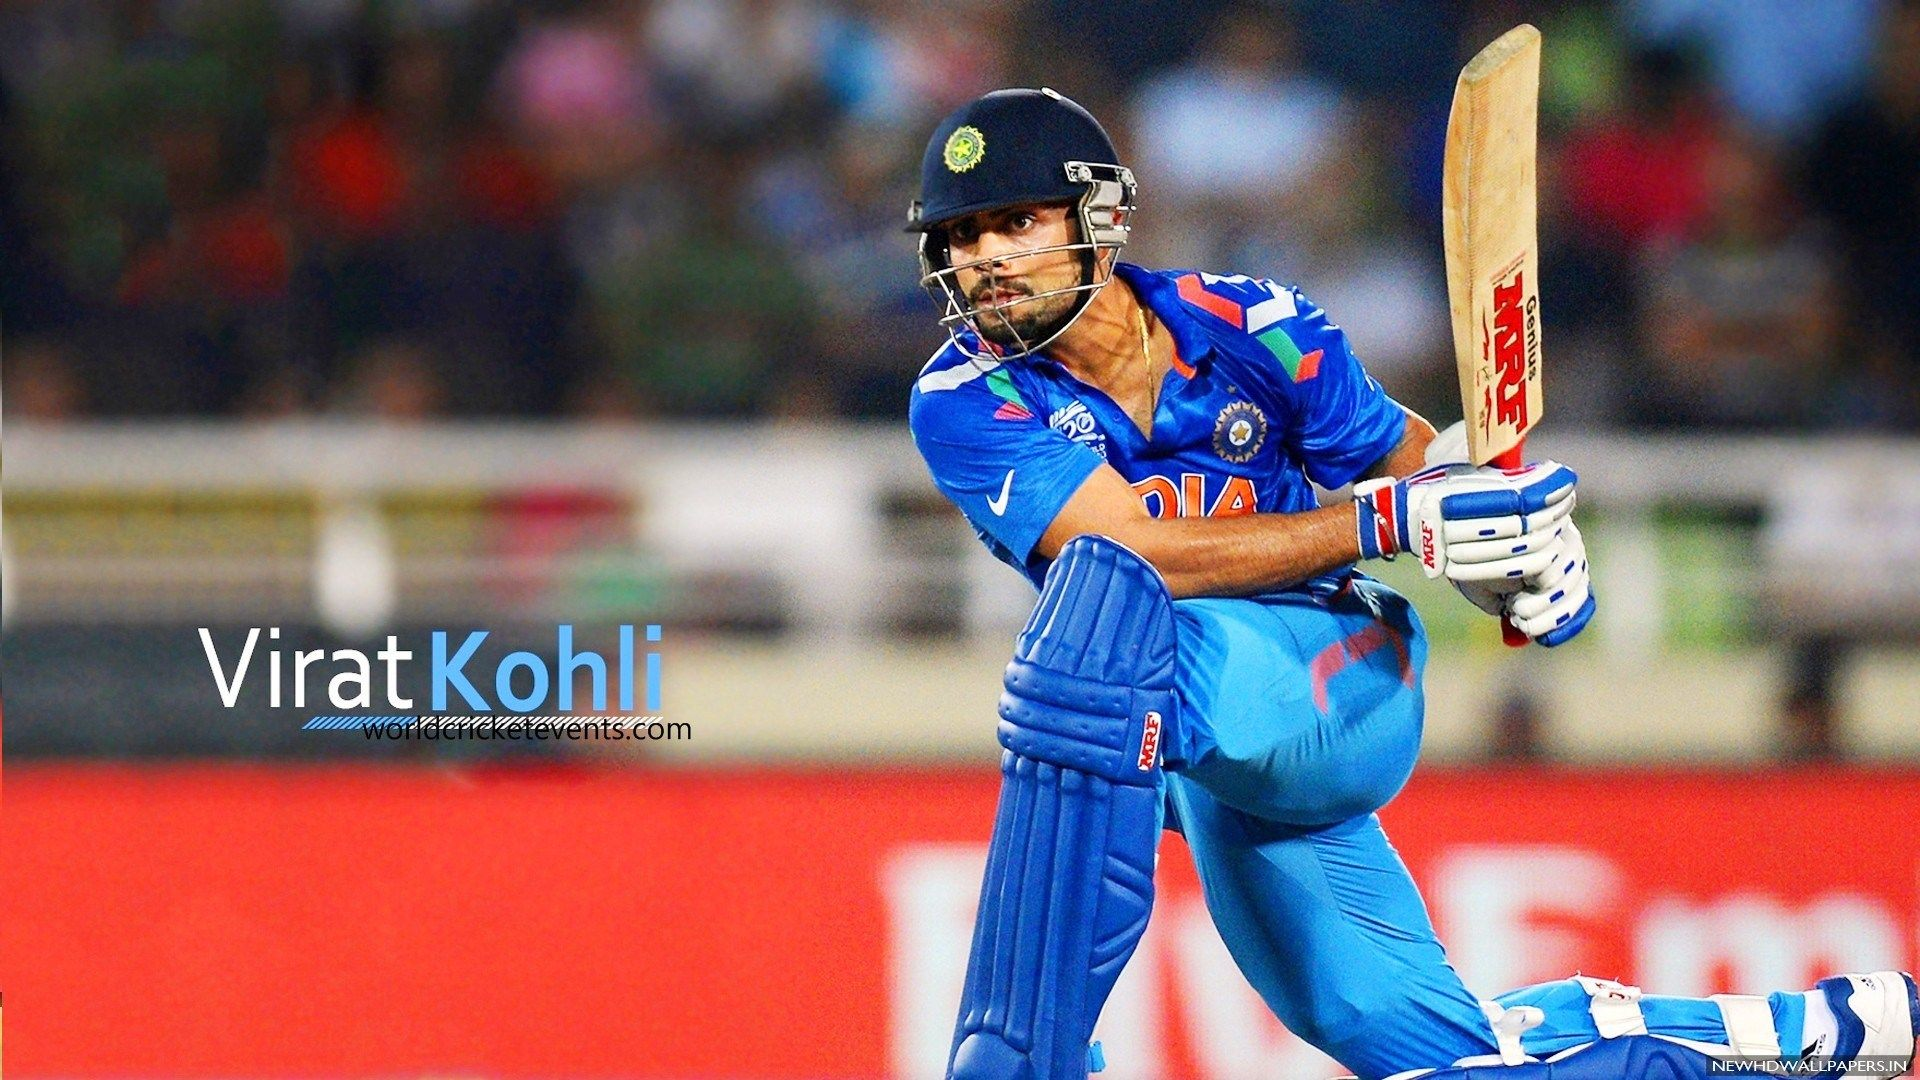 Pin By Cricket Events On Hd Wallpapers For Desktop Or Laptop Virat